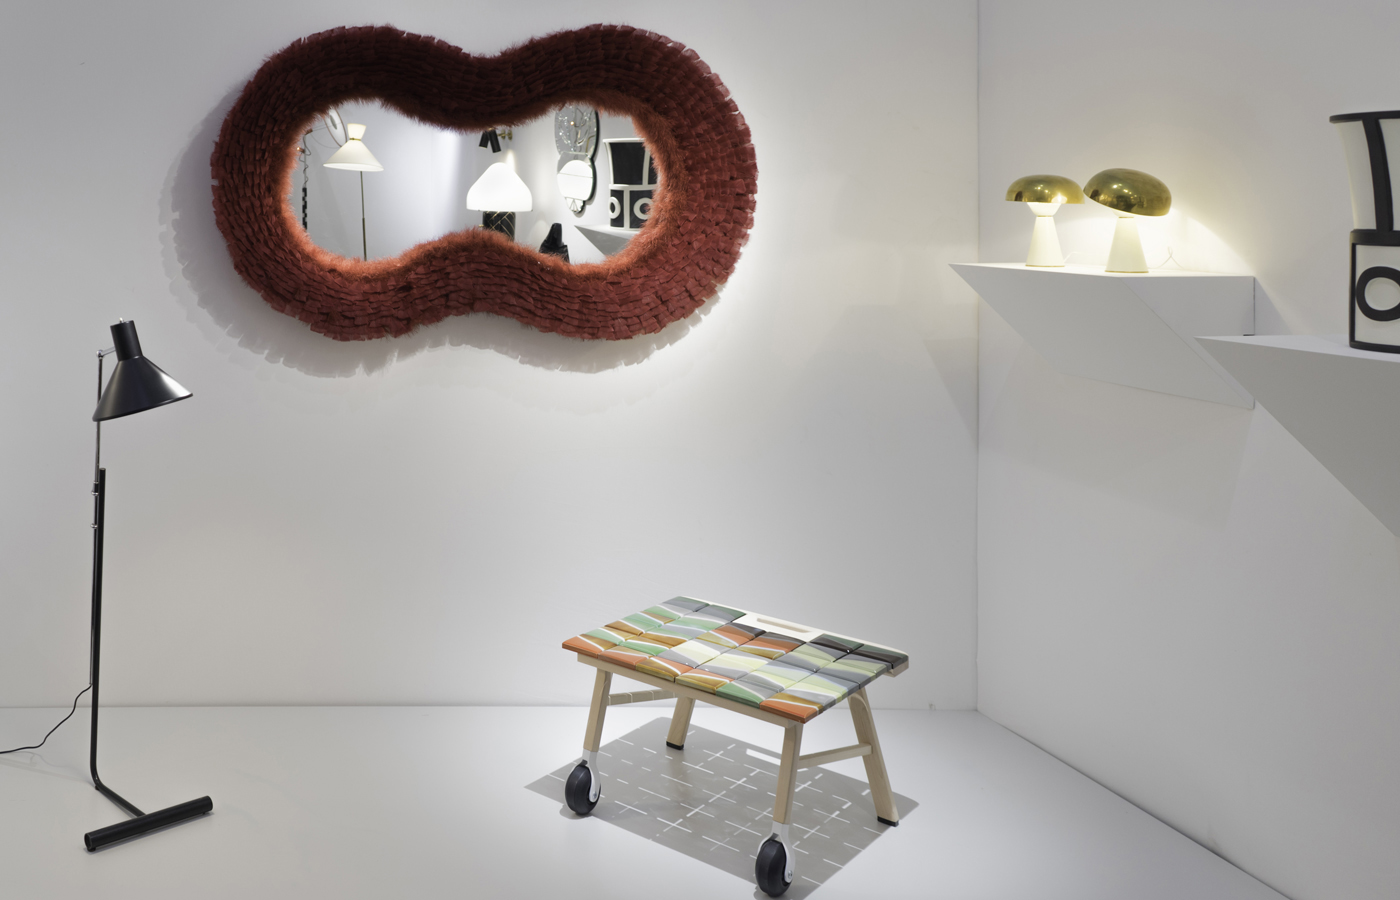 New Collectible Designs at The Salon Art+Design NY 2018 galerie kreo New Galerie kreo's Collectible Designs at The Salon Art+Design NY 2018 Collectible Designs at The Salon ArtDesign NY 2018 Showcase 2017